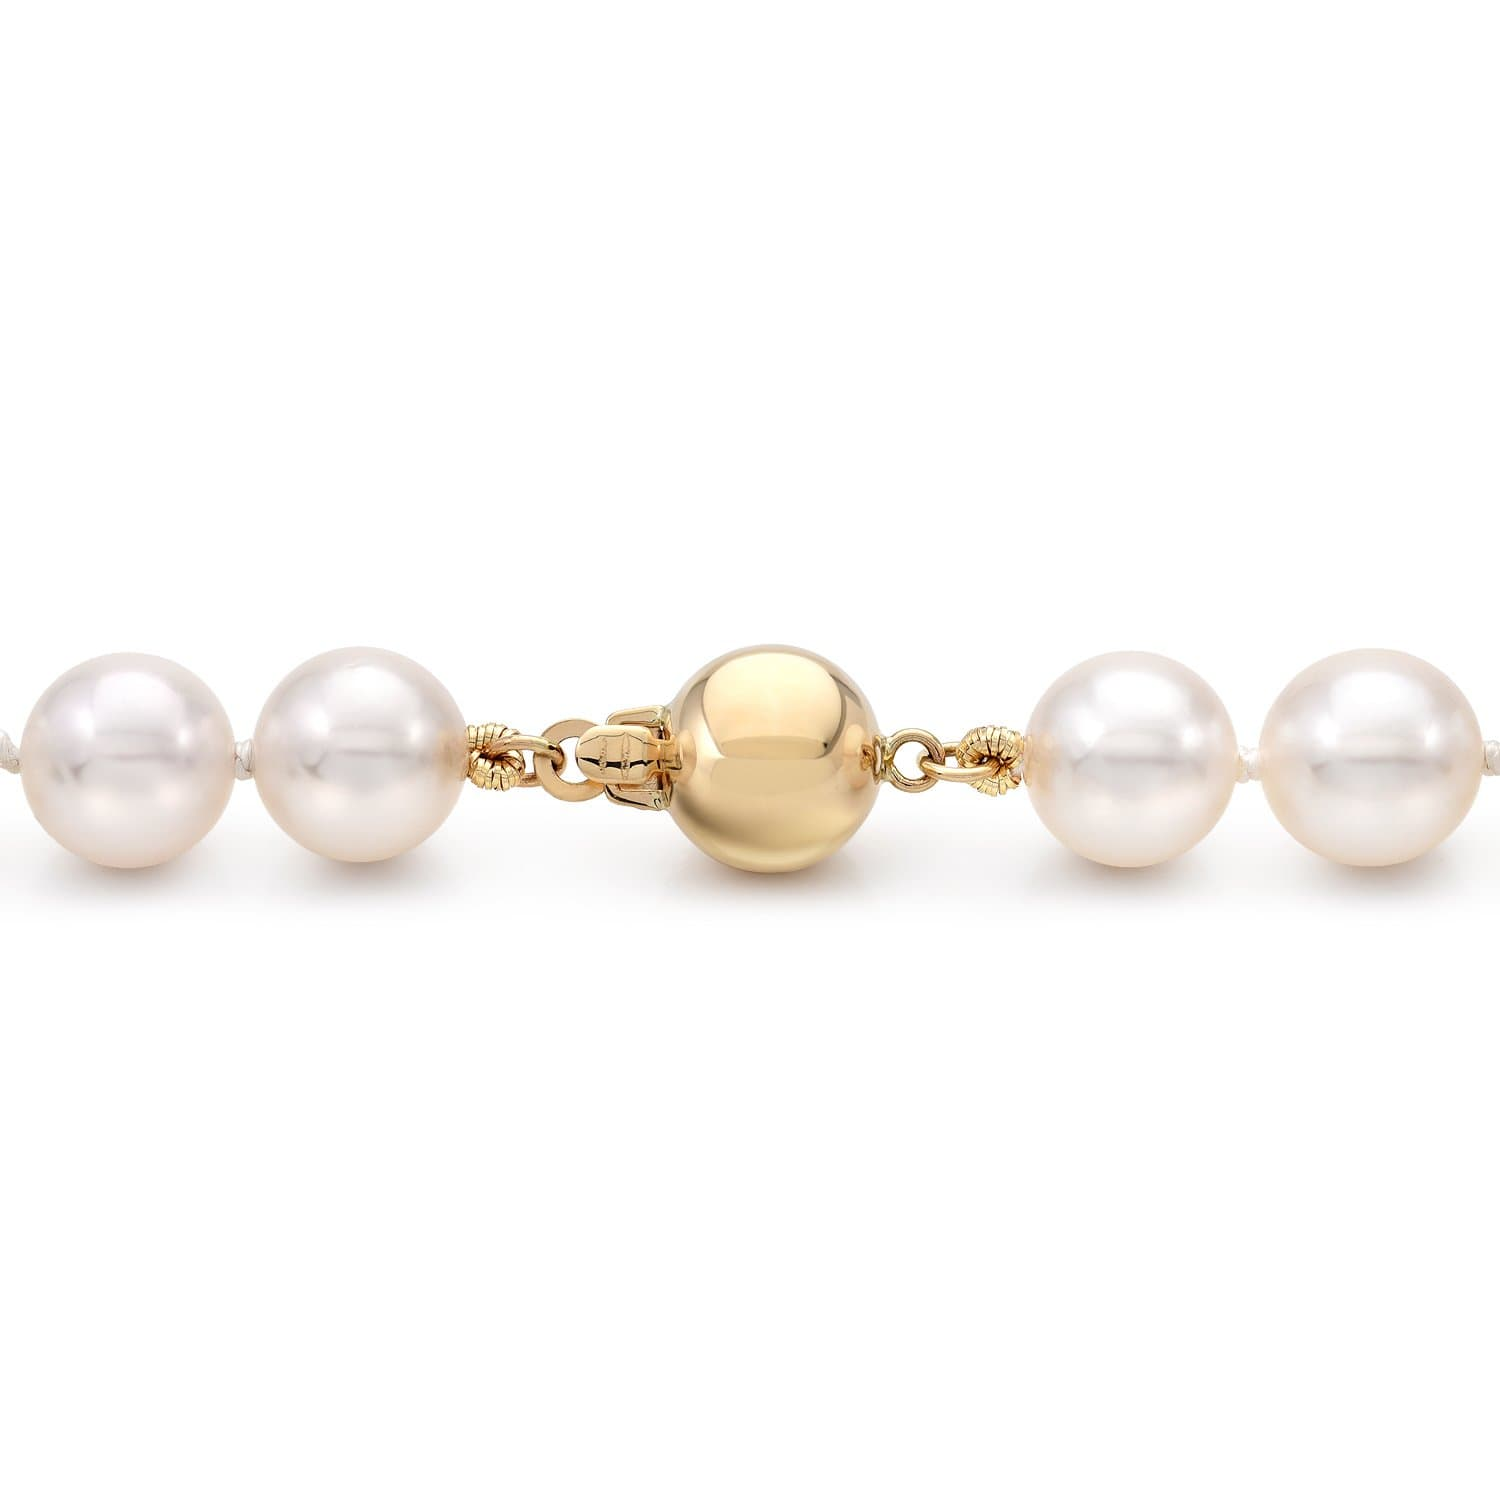 cfb8ea29d6f07 Akoya Pearl Necklace: 7.5-8.0mm